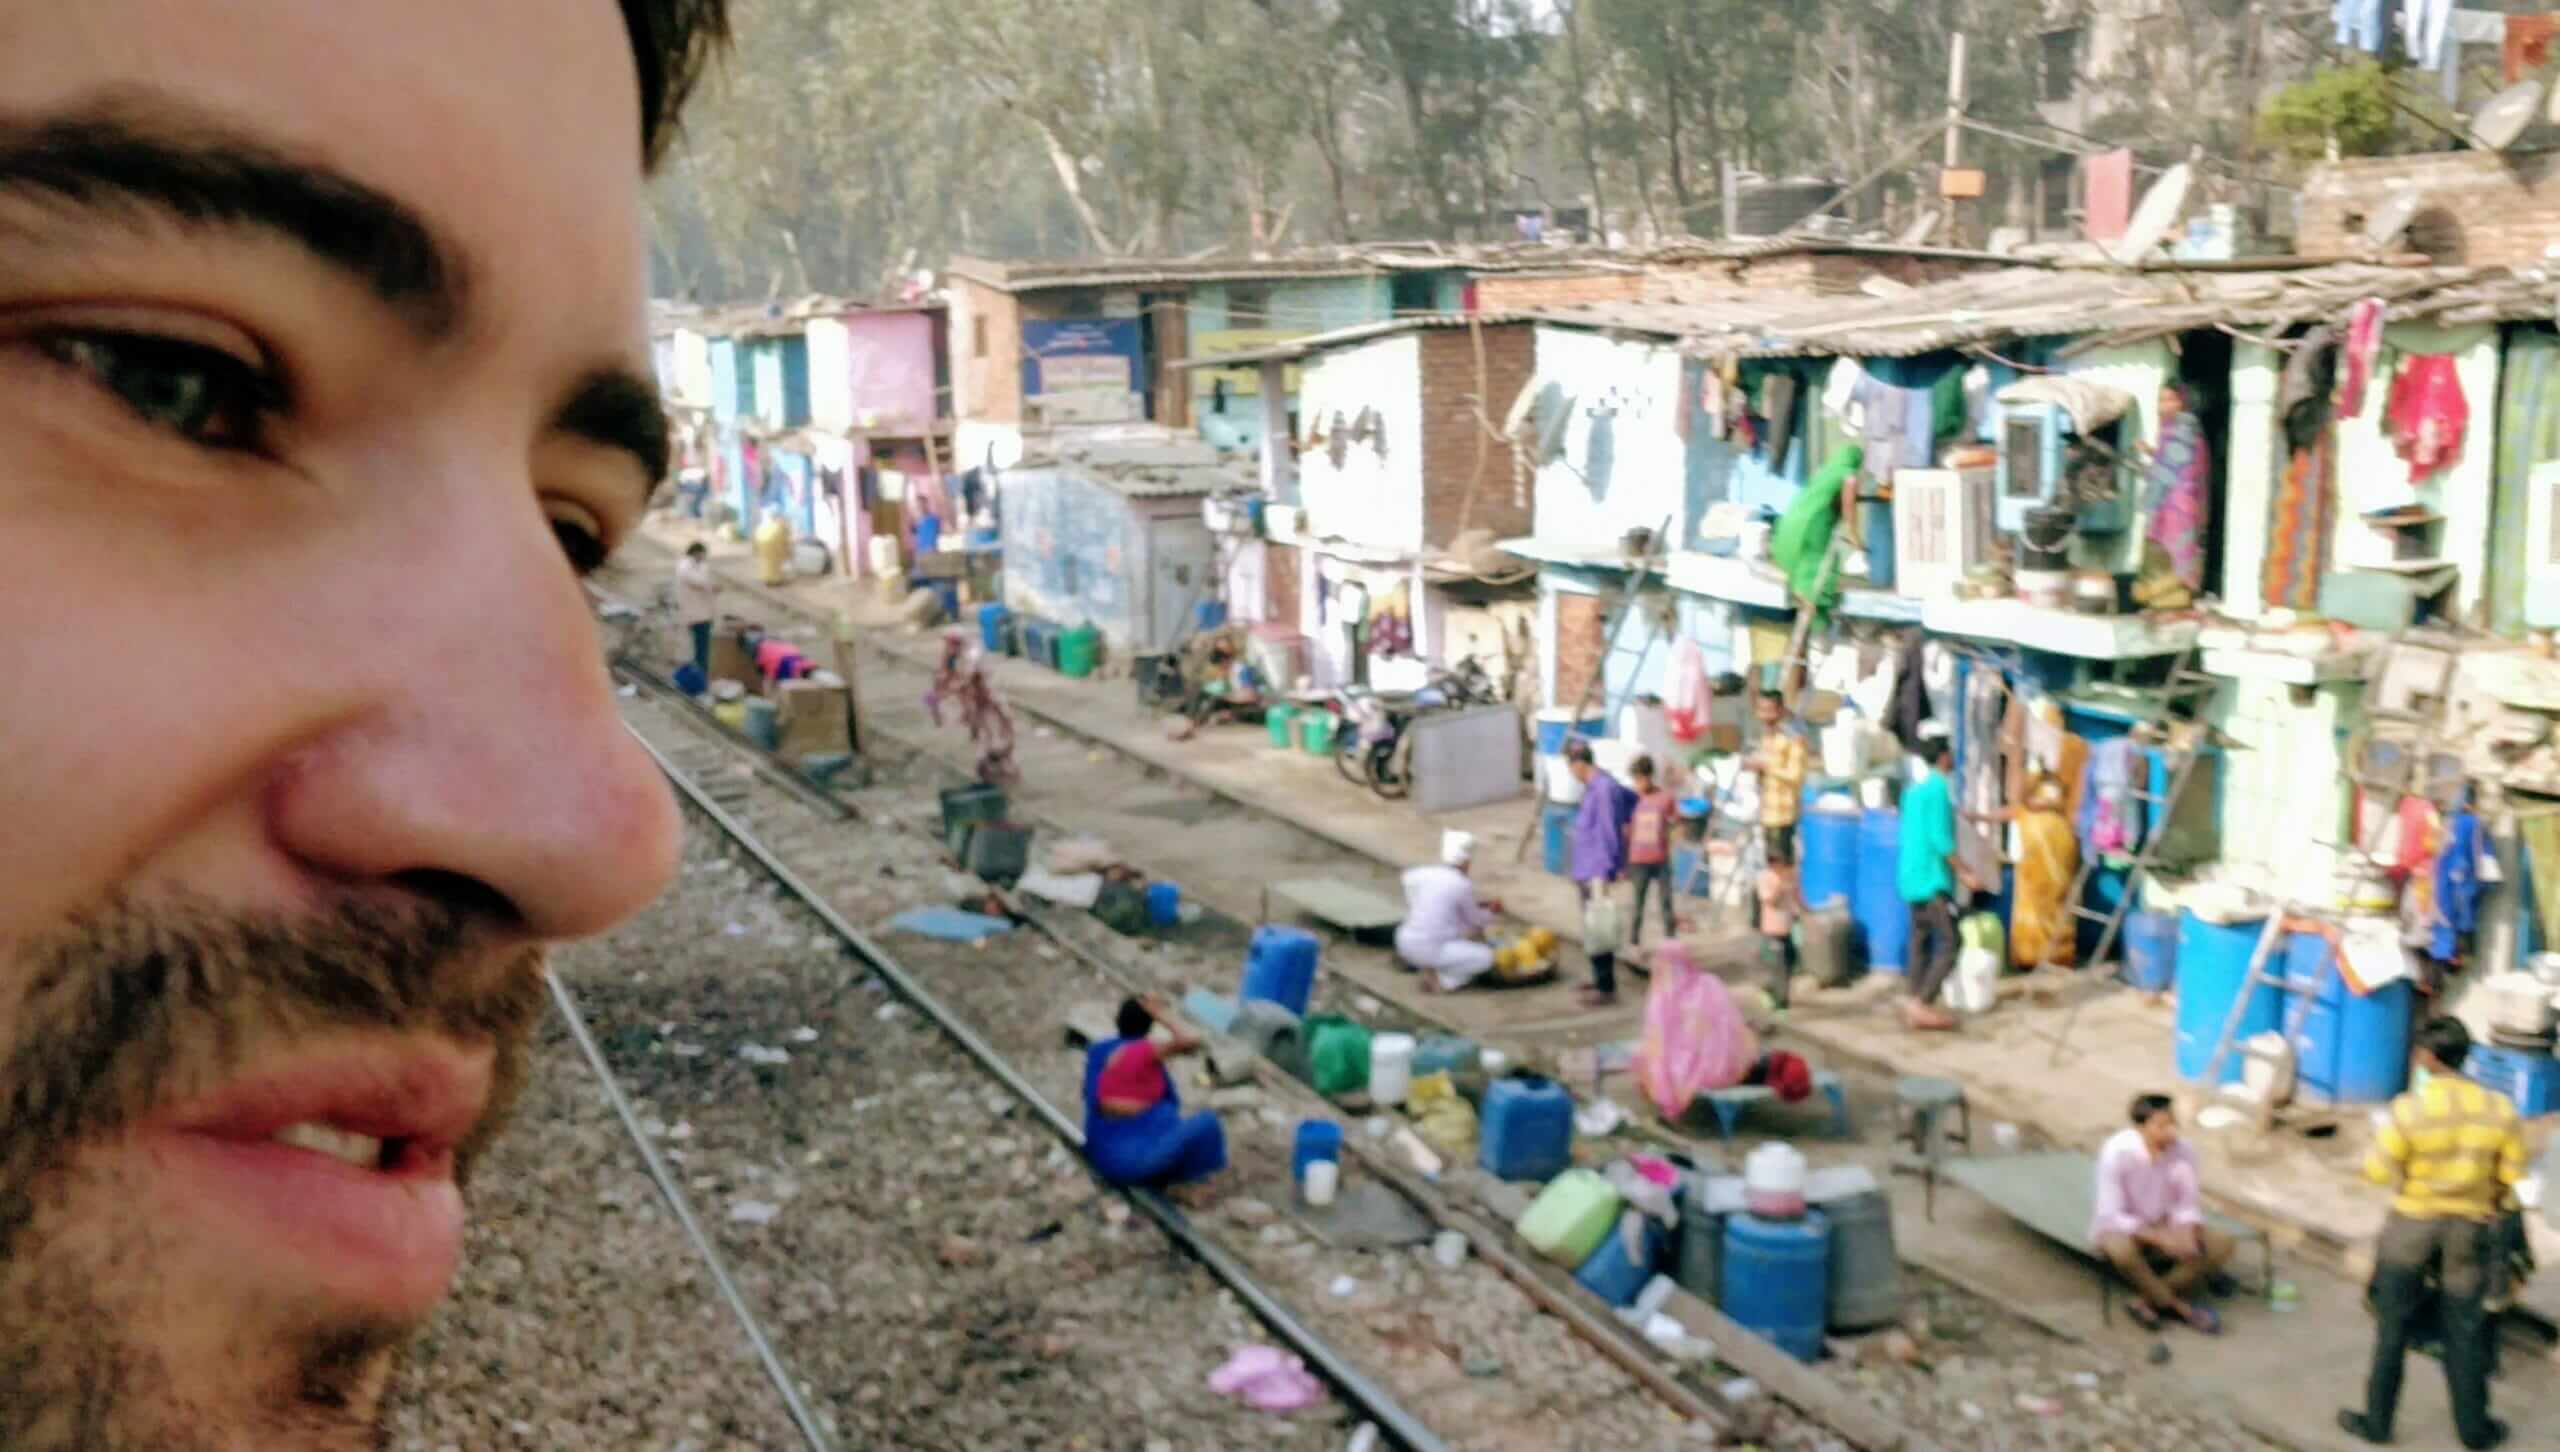 Your backpacking India travels will undoubtedly take you on the Indian railway which is an experience in and of itself